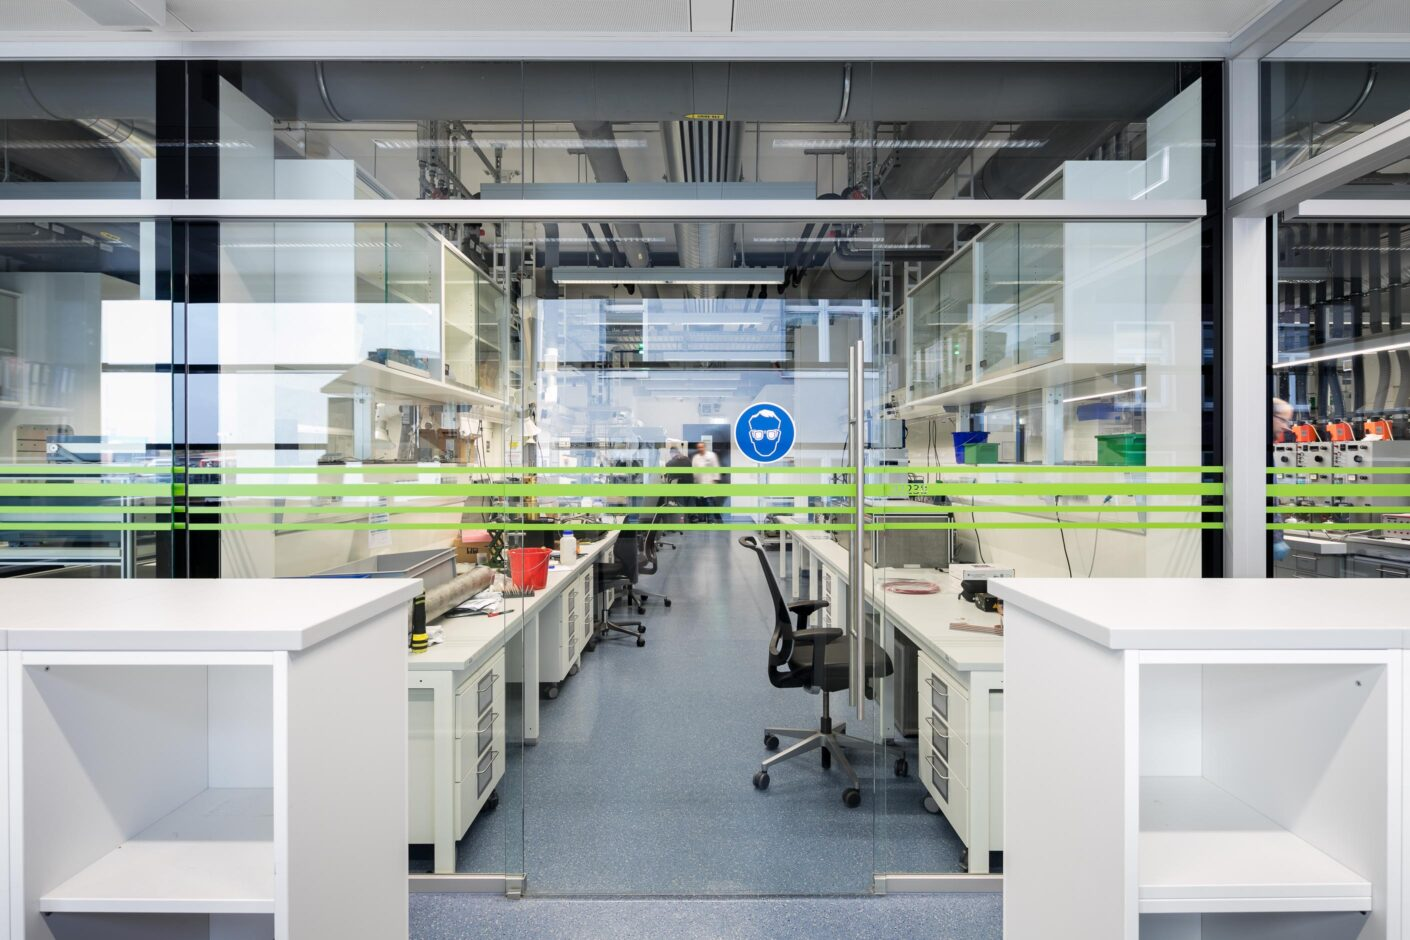 feco-feederle│partition wall systems│BASF Ludwigshafen